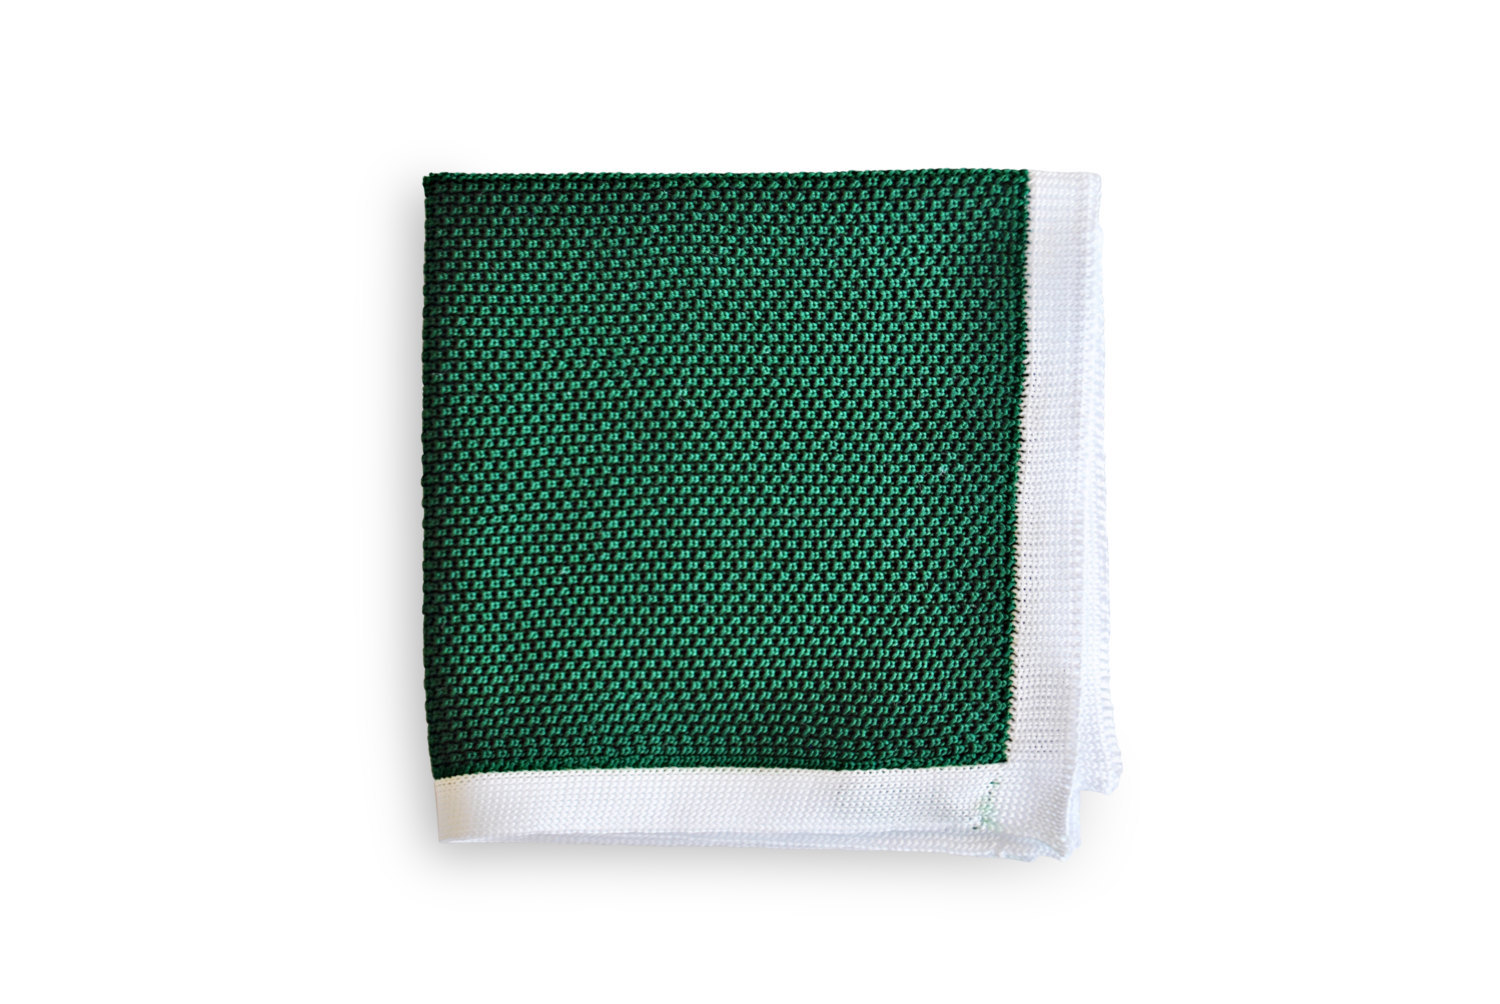 Frederick Thomas knitted dark green with white edging pocket square with white e